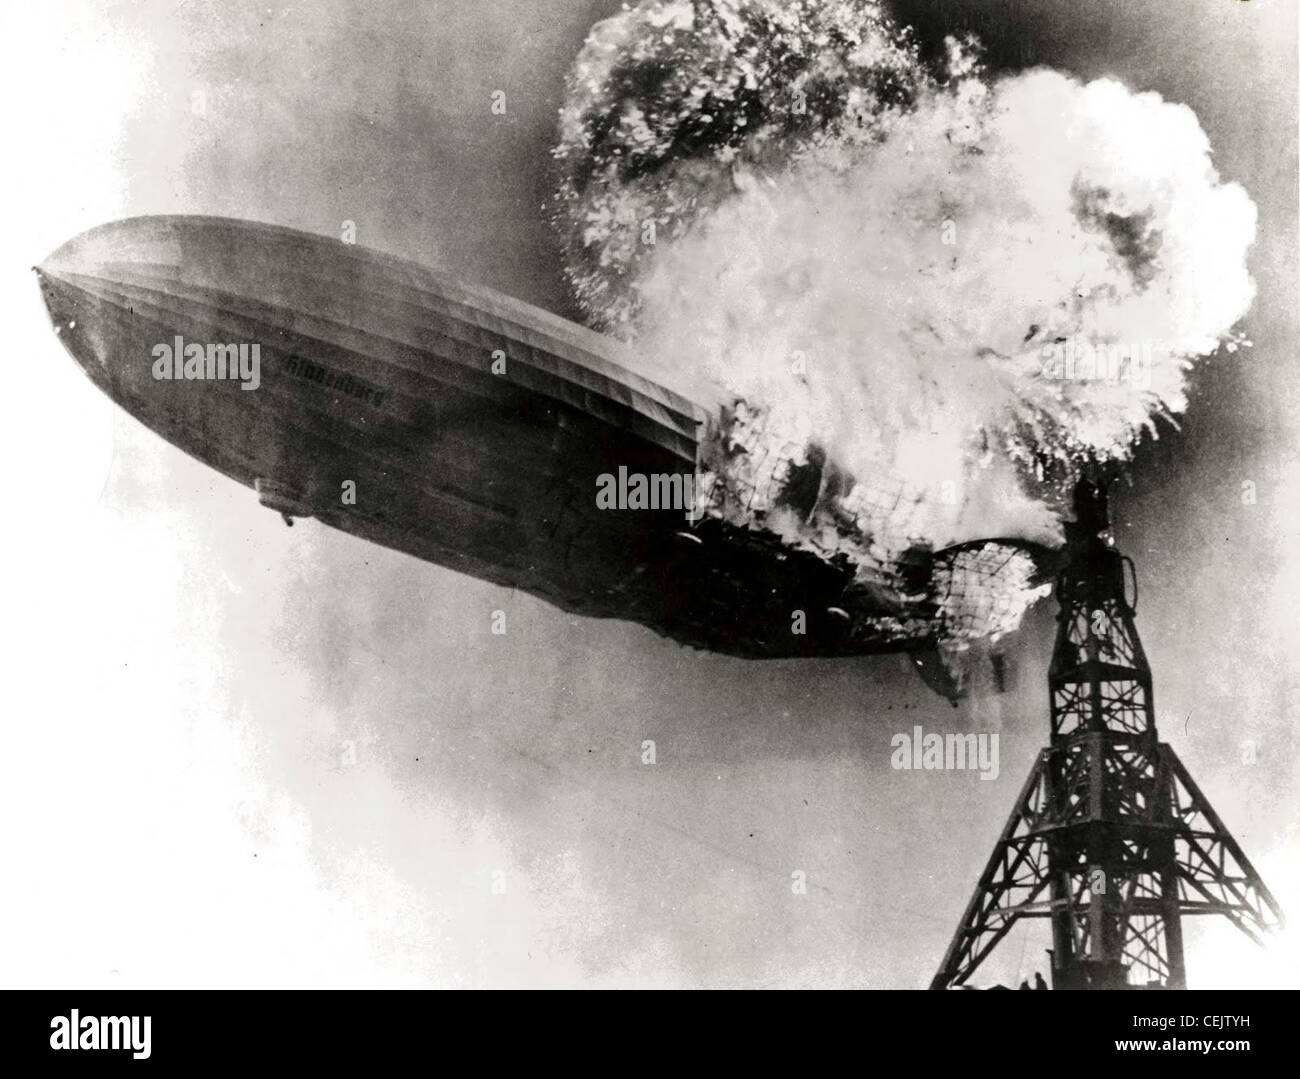 La catastrophe du Hindenburg Photo Stock